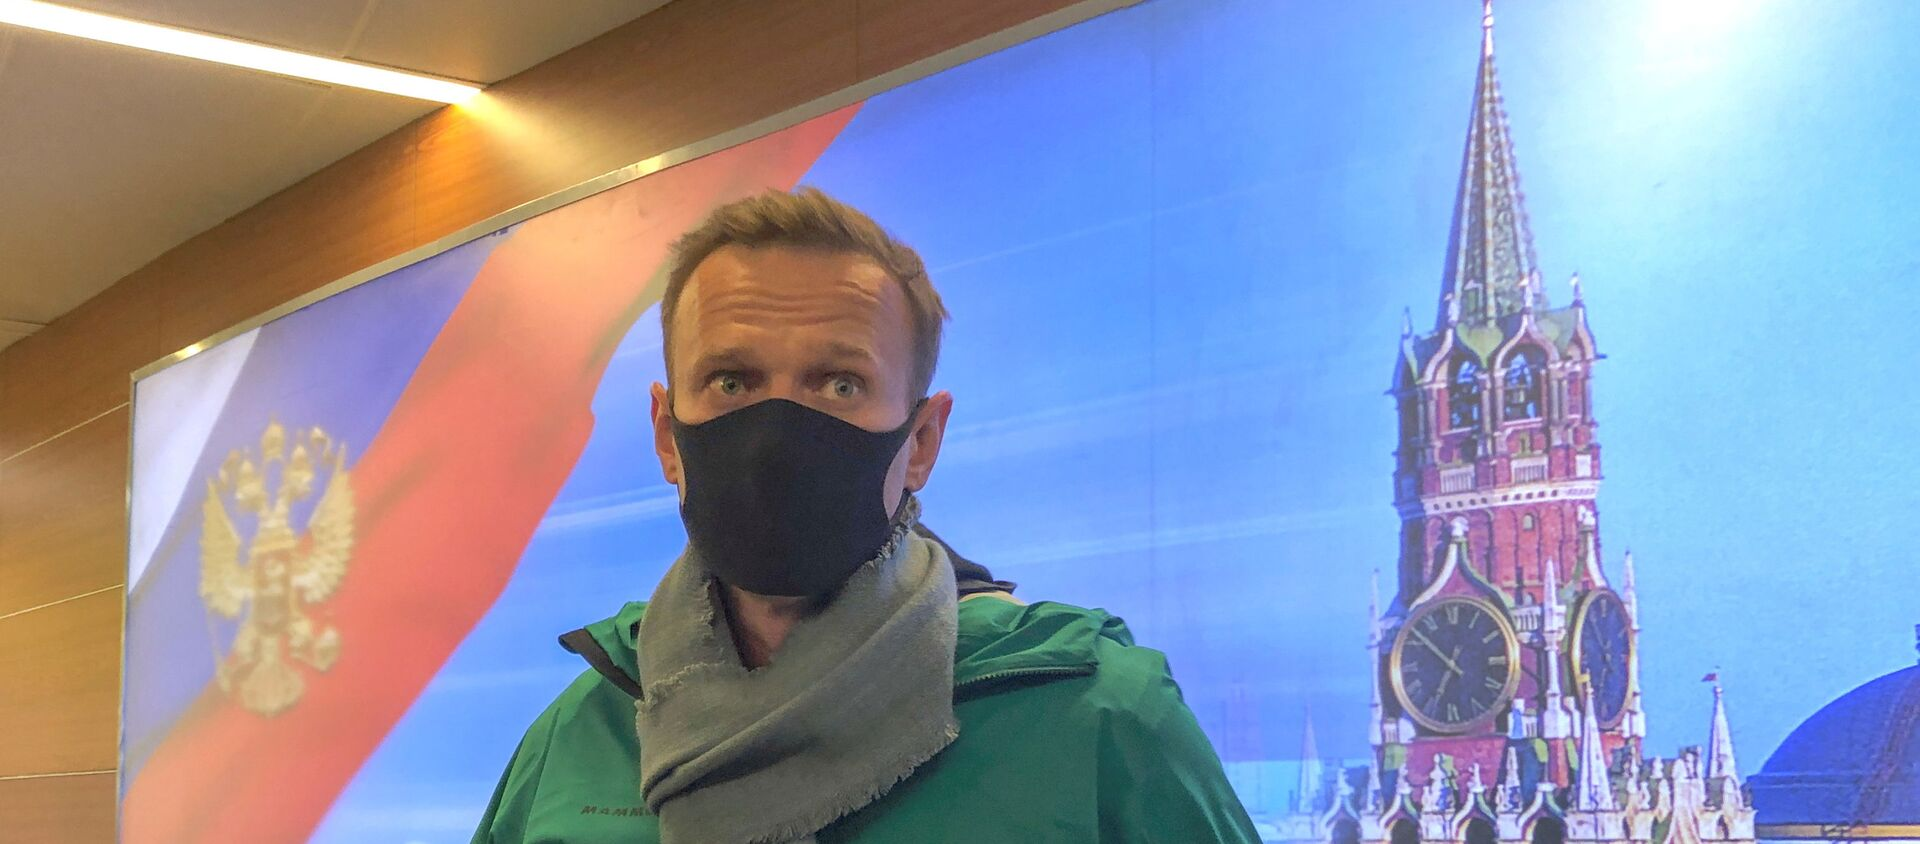 Russian opposition leader Alexei Navalny arrives in Moscow - Sputnik Italia, 1920, 31.01.2021